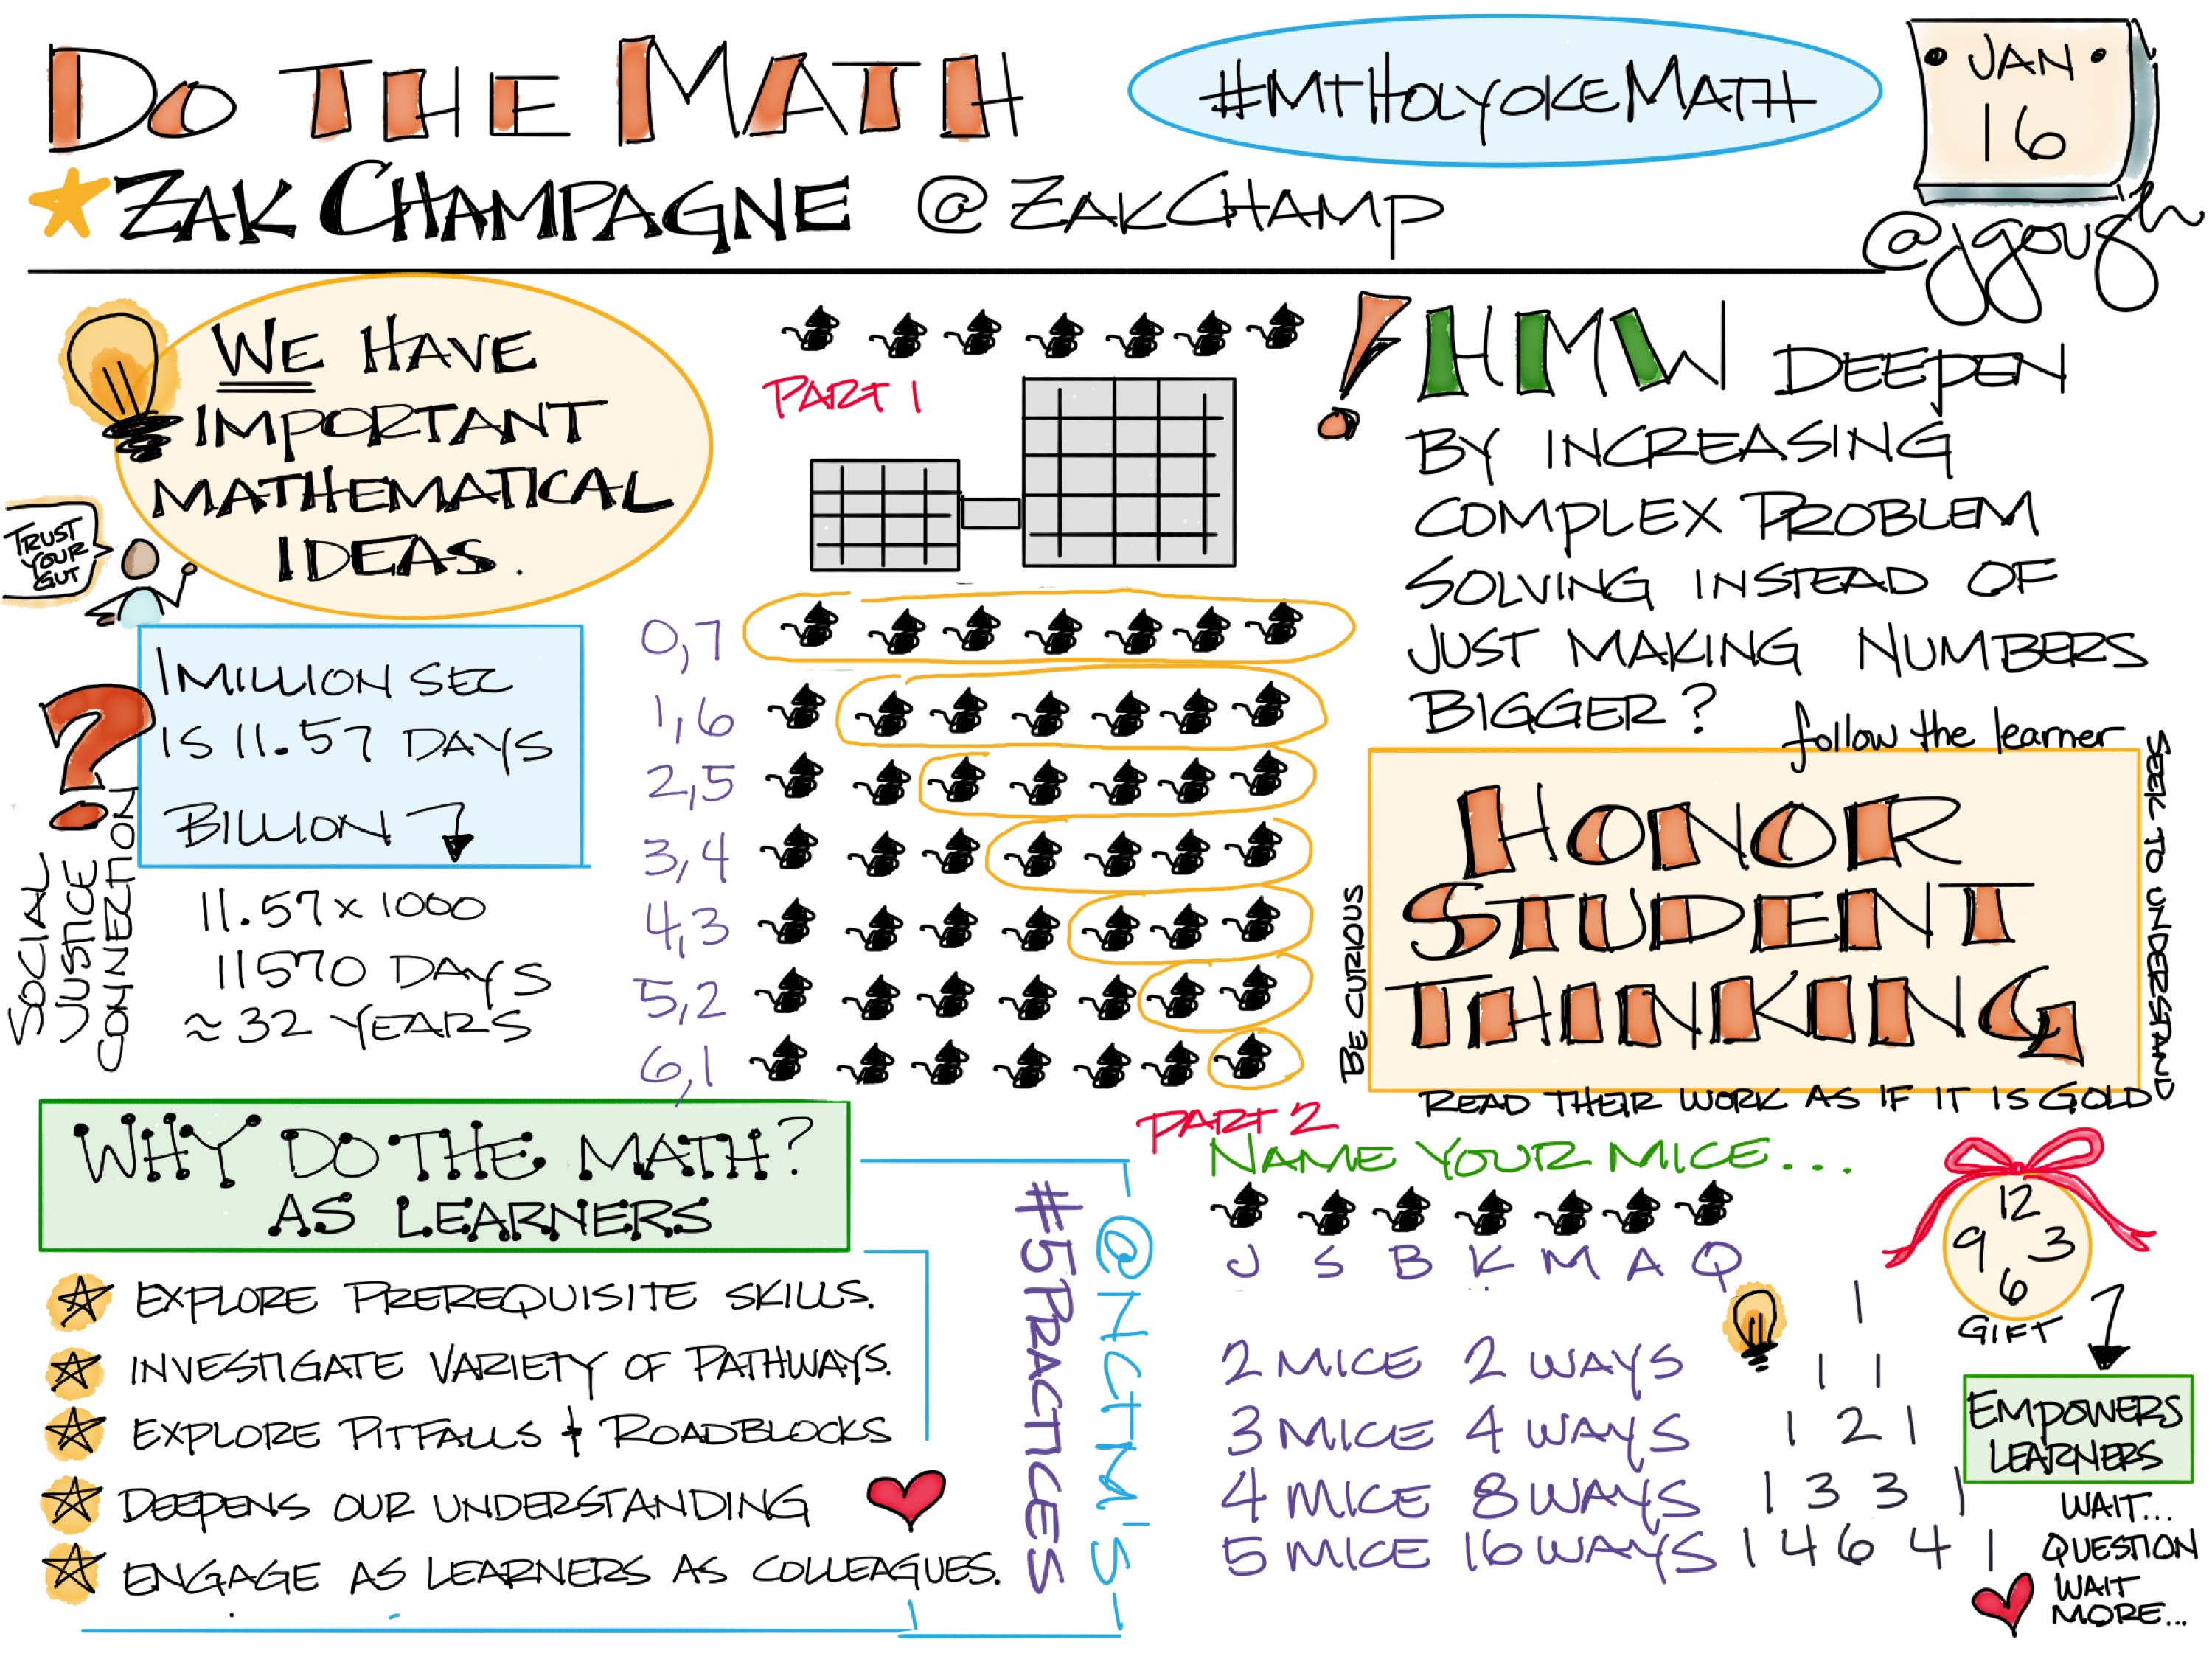 "@ZakChamp's #MtHolyokeMath session ""Do The Math"" Honor student thinking. Important ideas!"